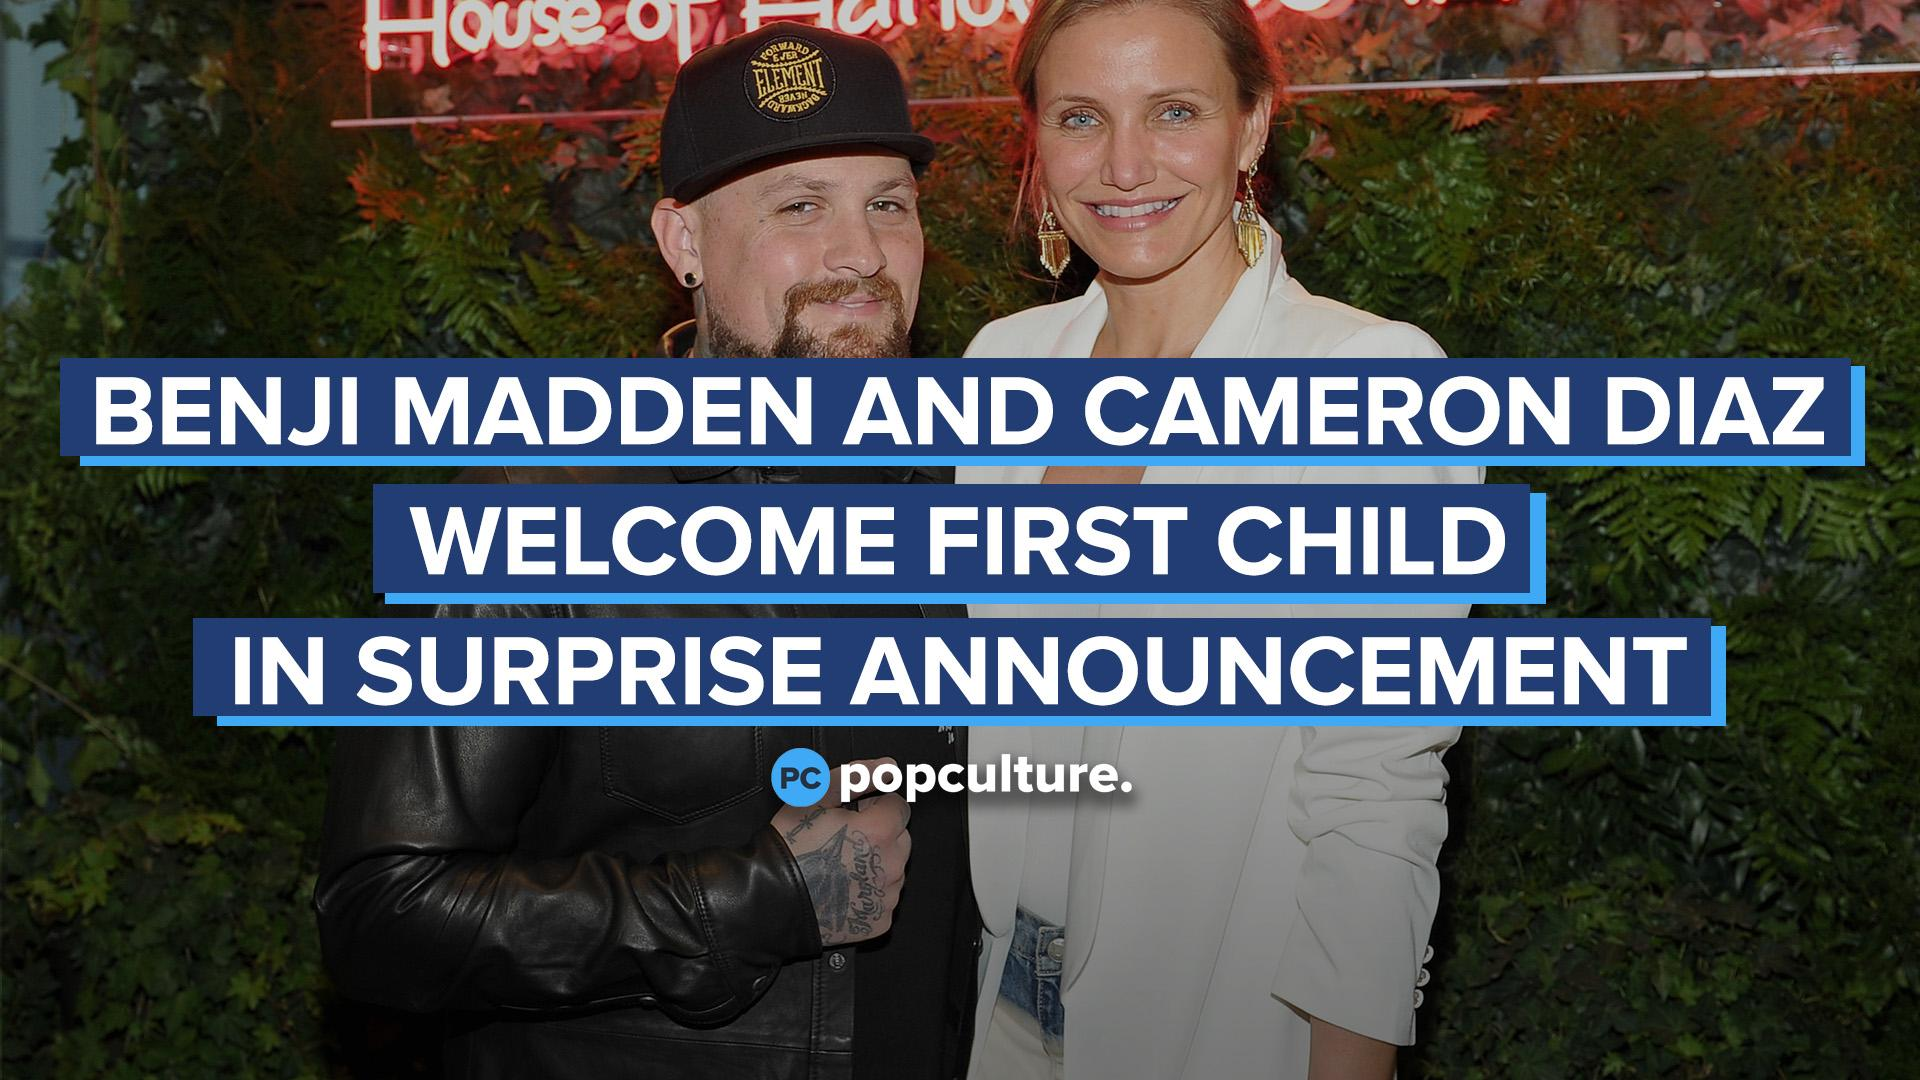 Benji Madden and Cameron Diaz Welcome First Child in Surprise Announcement screen capture